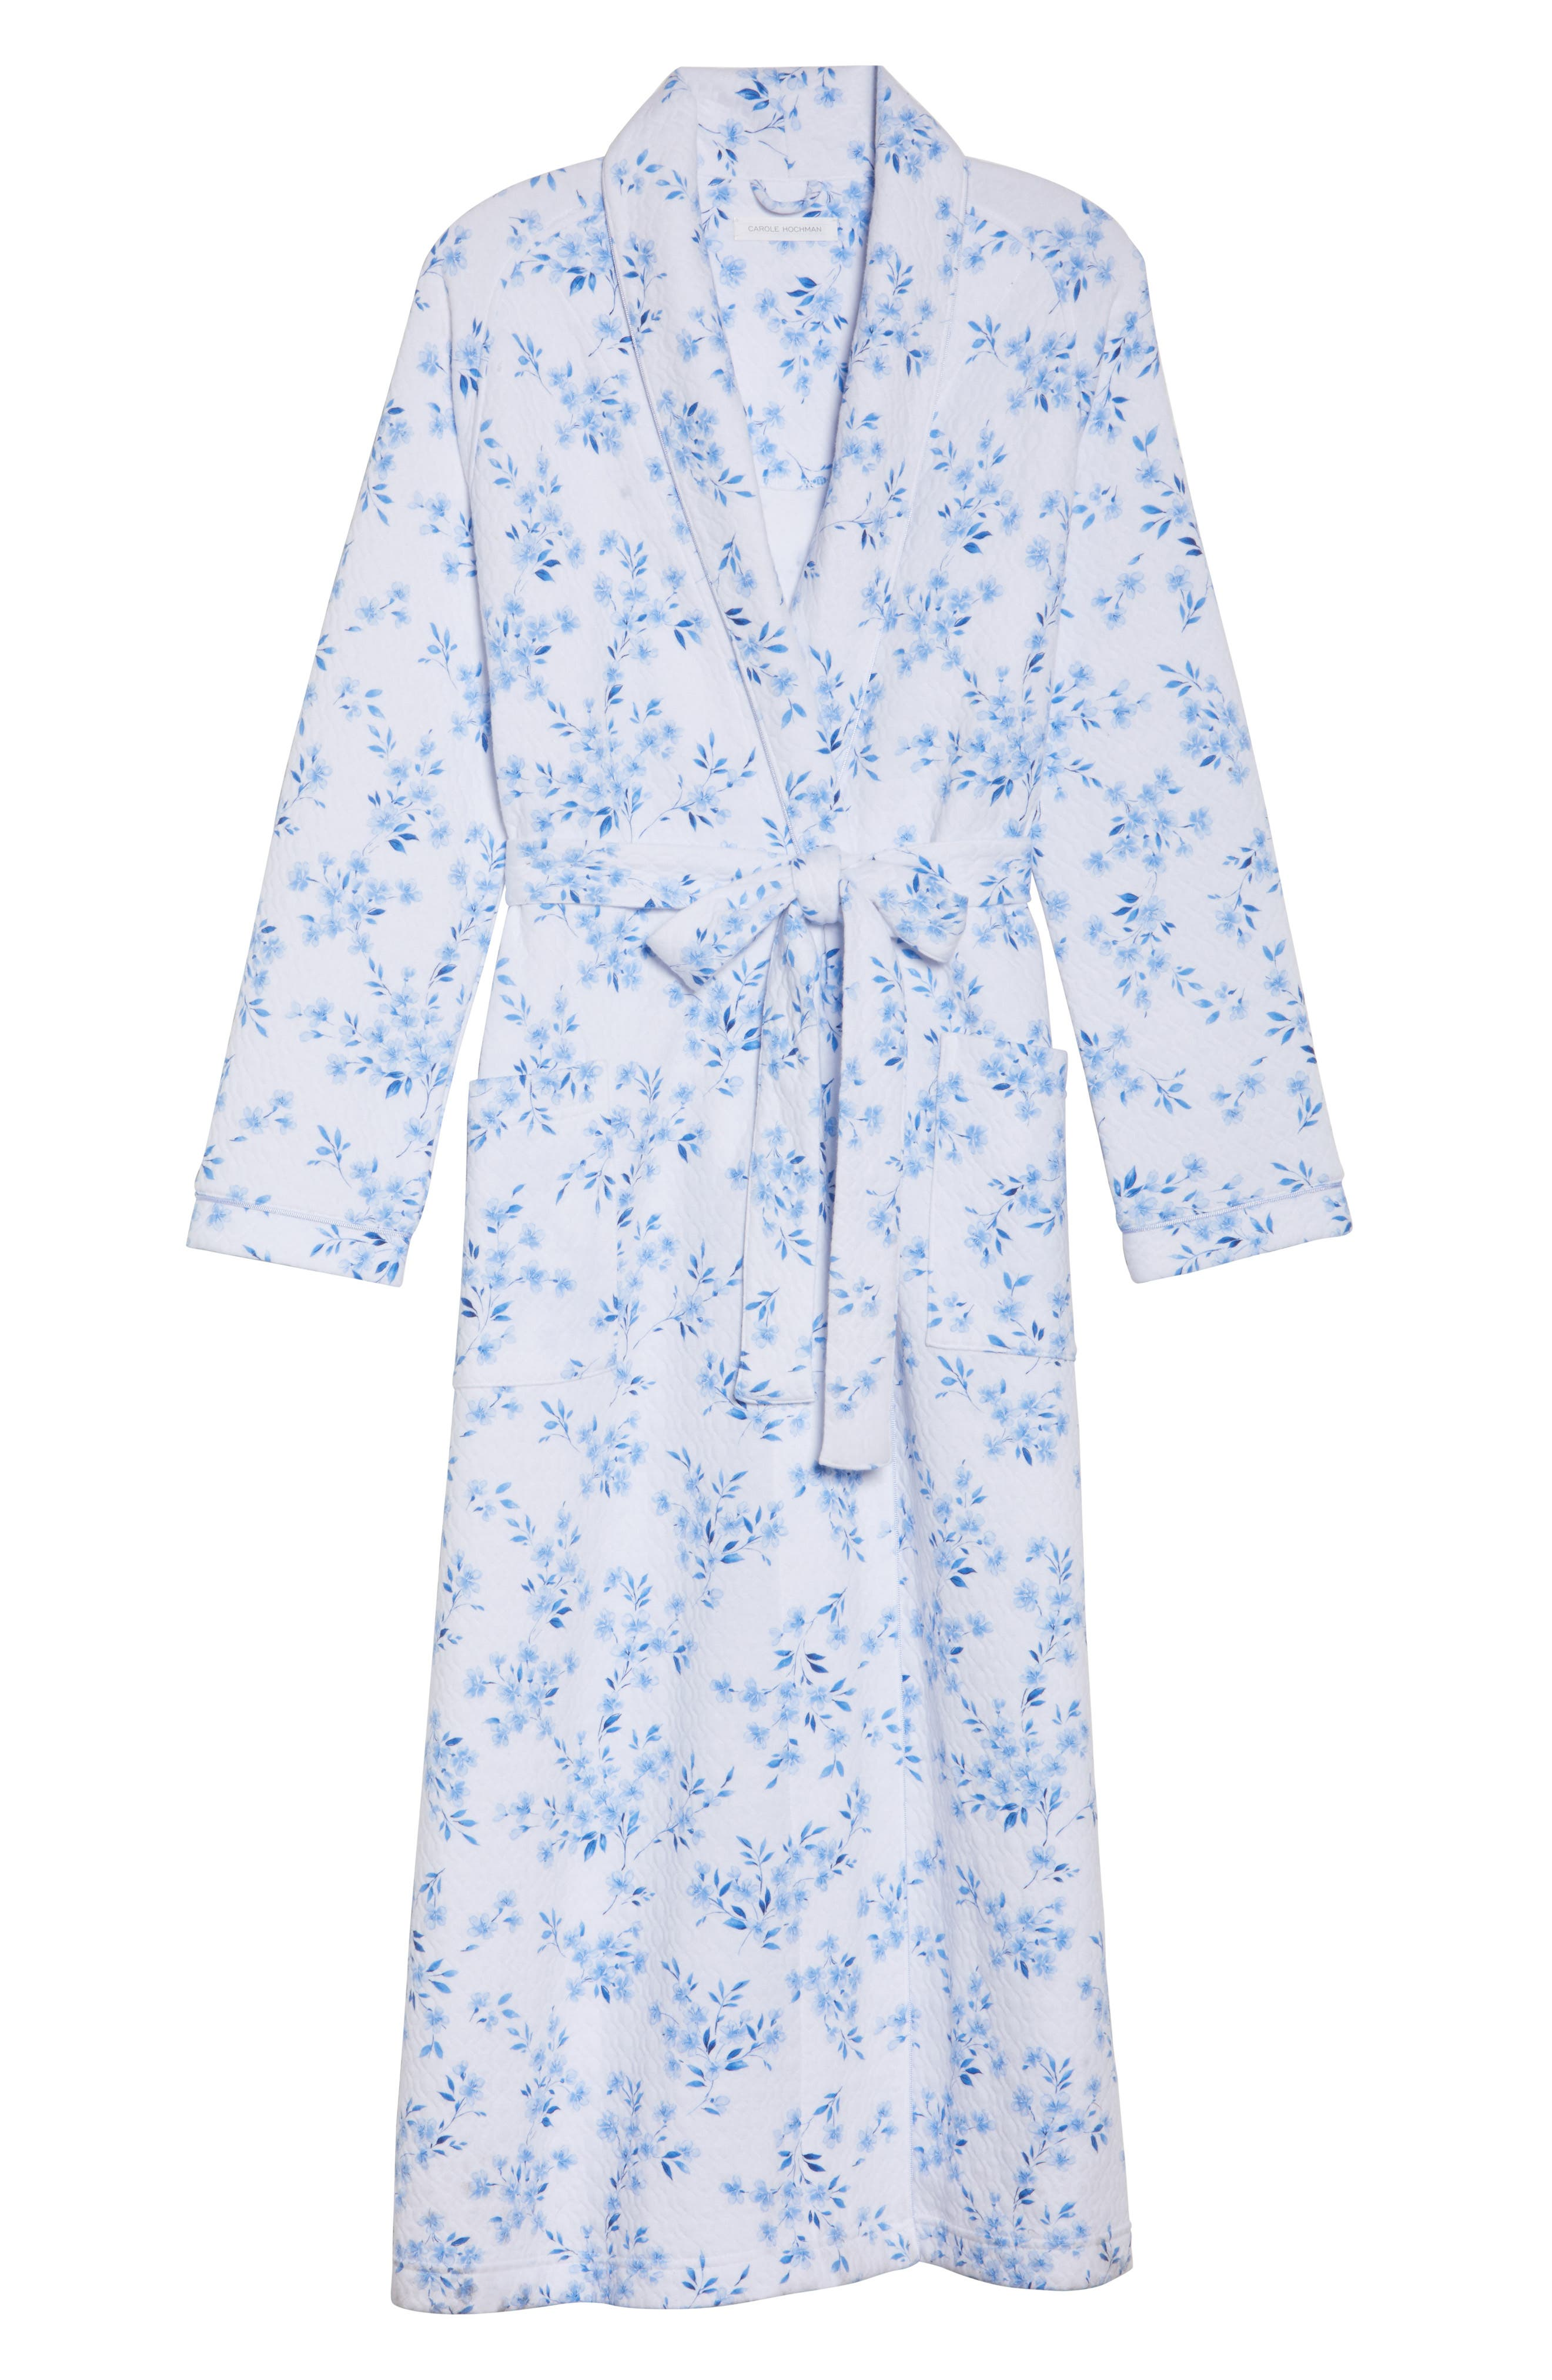 Quilted Robe,                             Alternate thumbnail 6, color,                             FLORAL TWIN